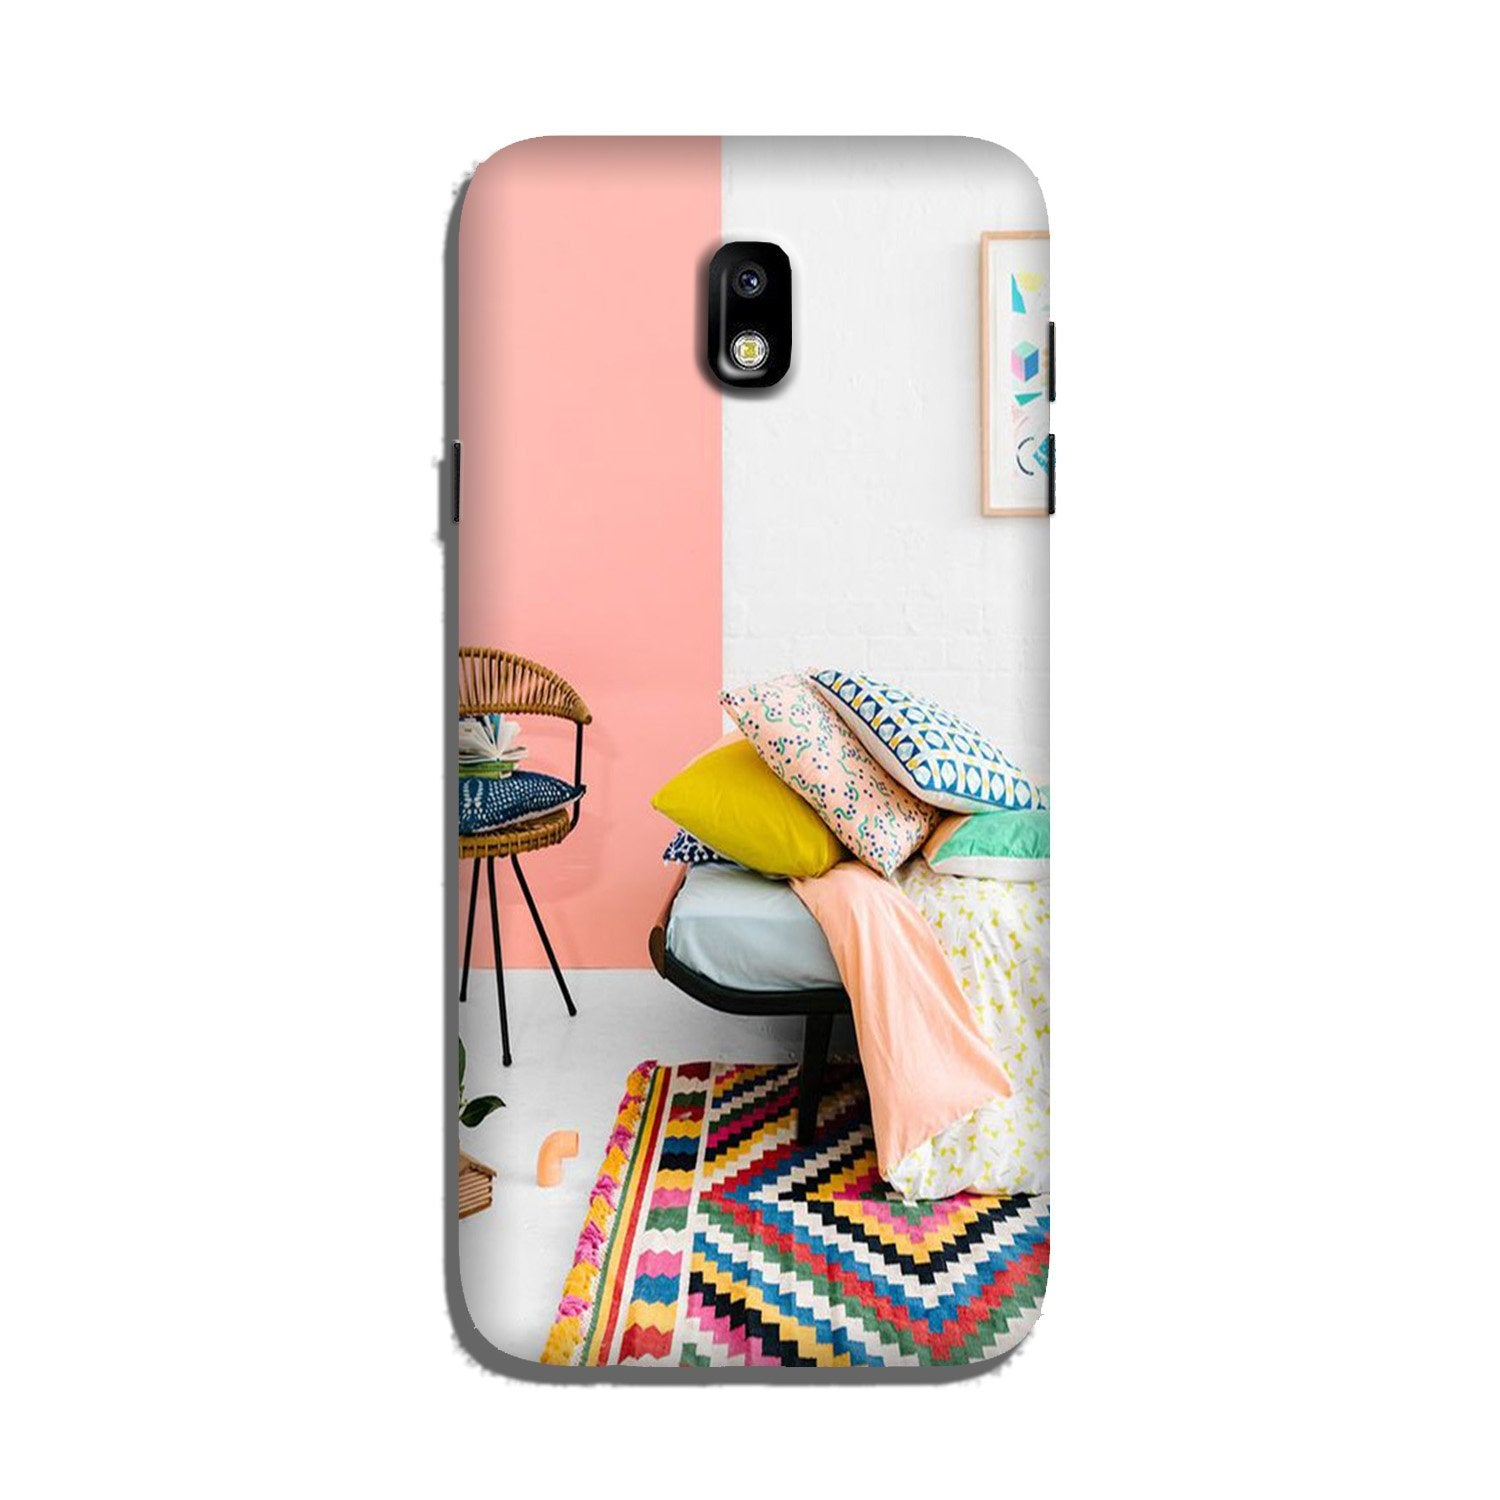 Home Décor Case for Galaxy J3 Pro